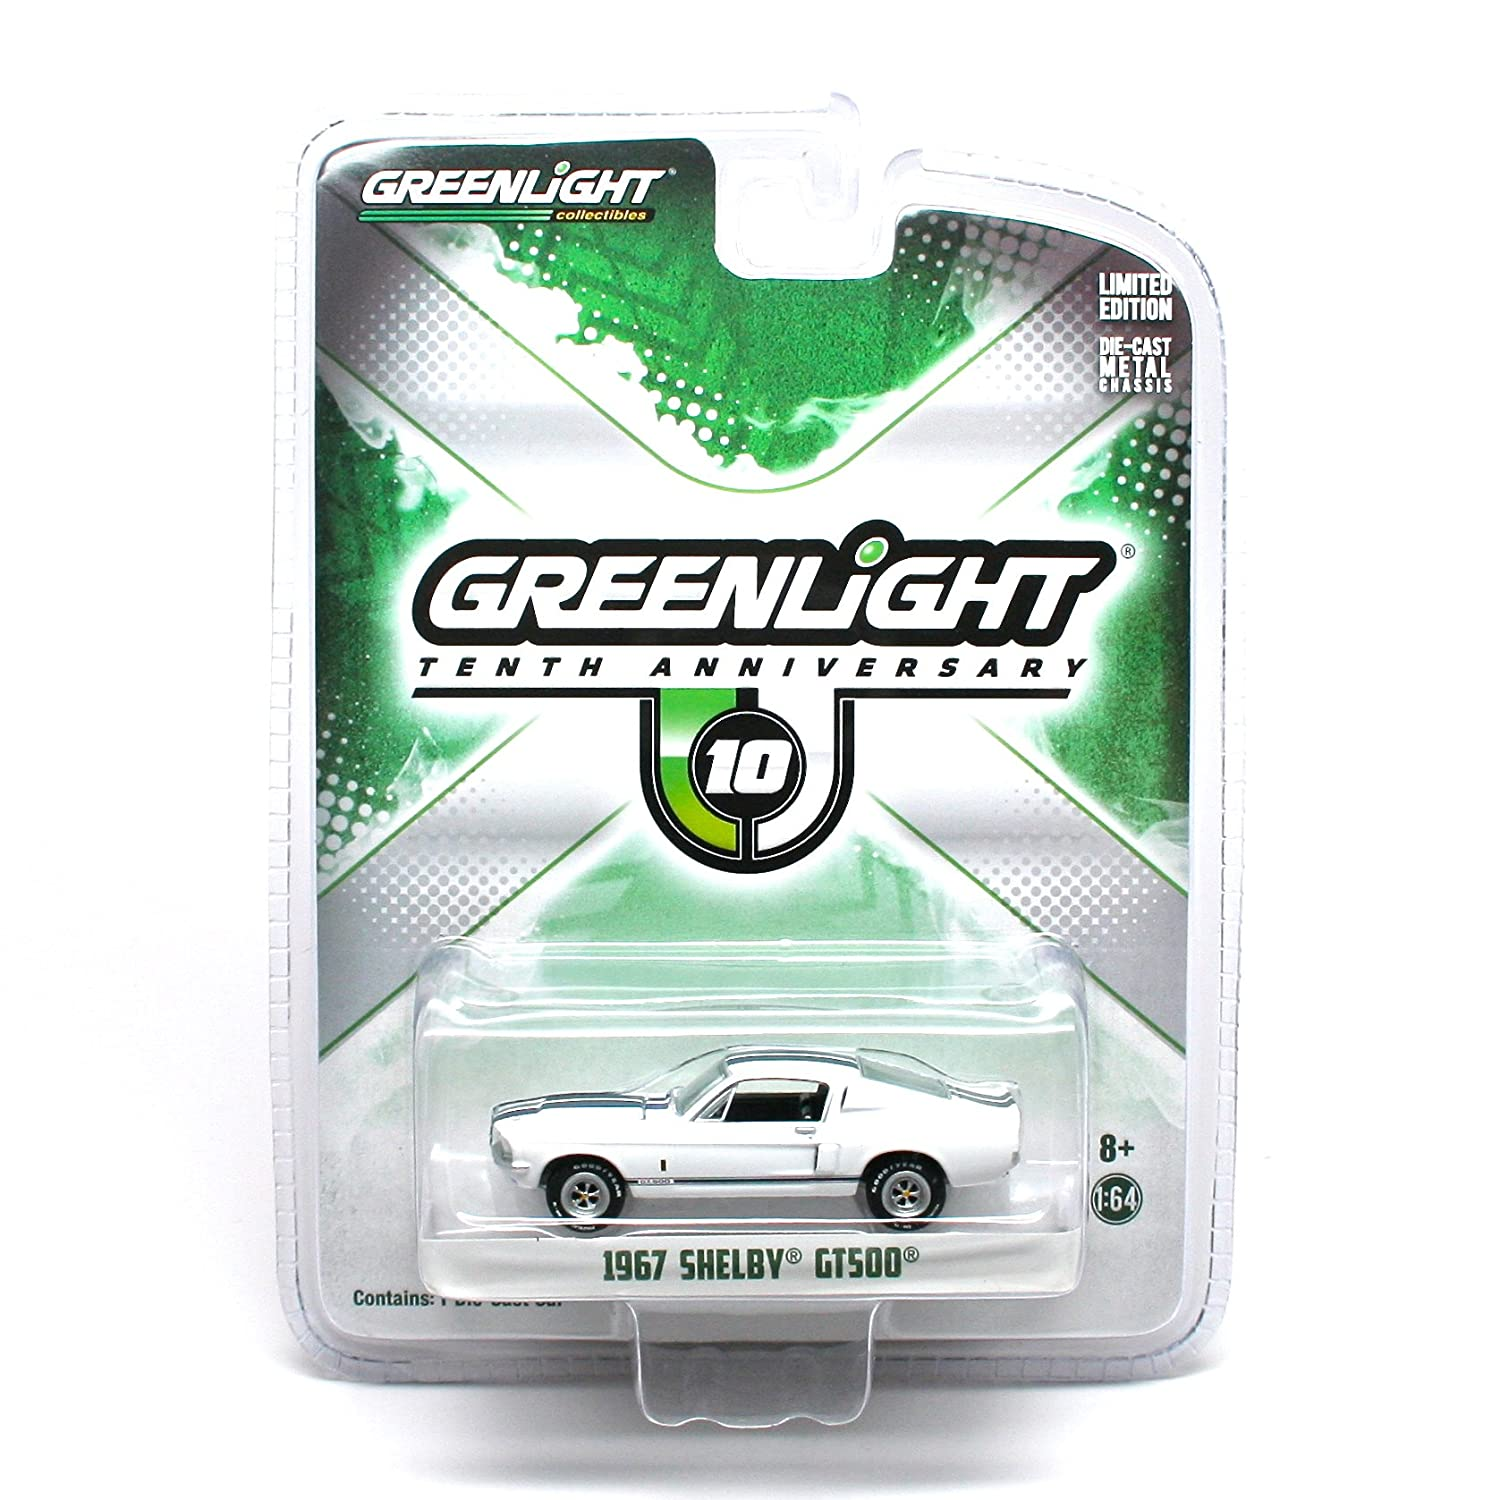 alta calidad y envío rápido 1967 Shelby GT500 GT500 GT500  Greenlight 10th Anniversary  2014 GL Muscle Series 8 Greenlight Collectibles Limited Edition 1:64 Scale Die-Cast Vehicle by GL Muscle  salida de fábrica